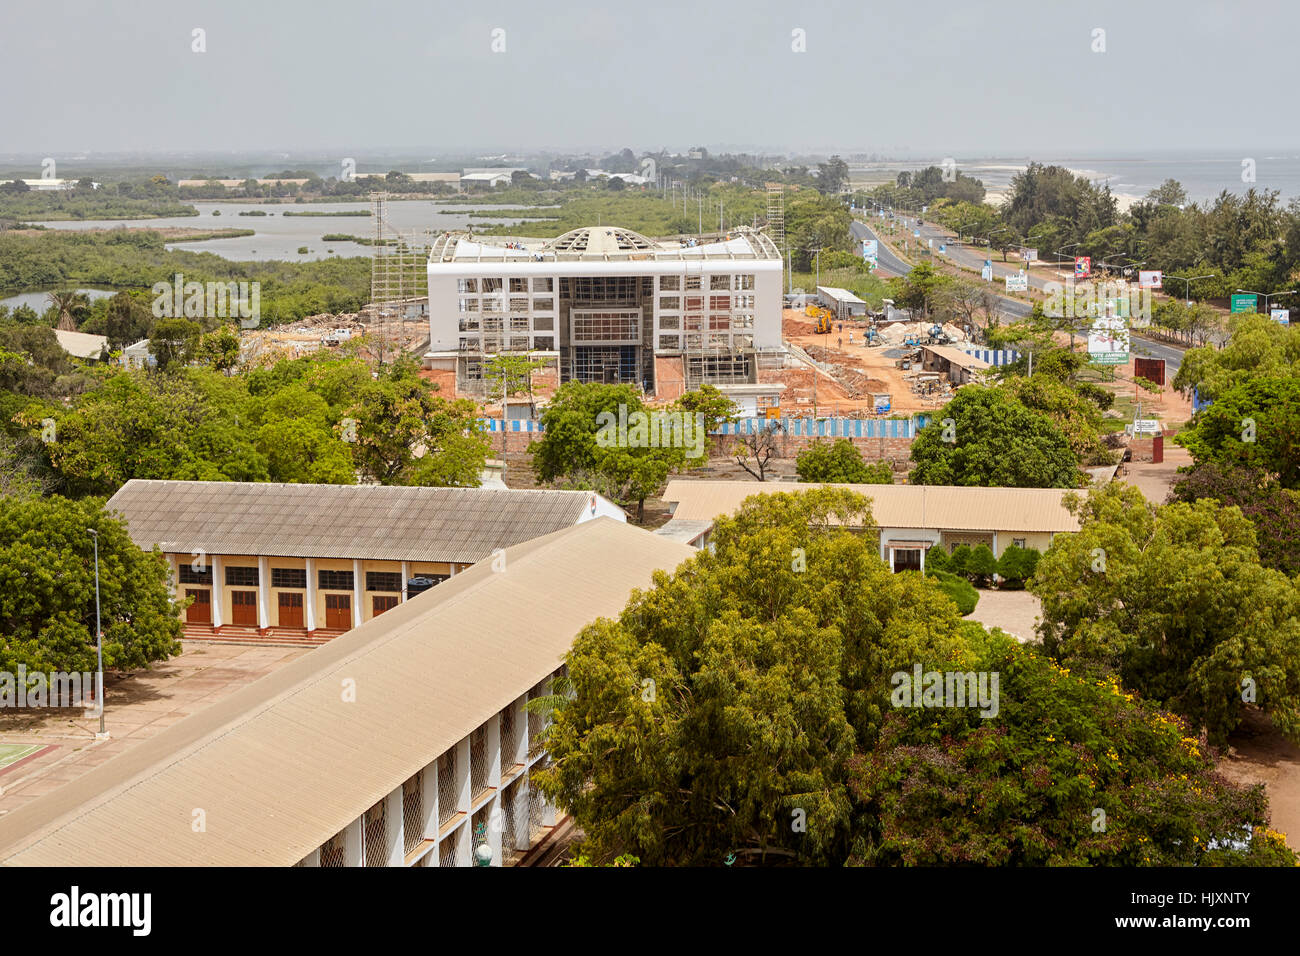 Construction of the National Assembly building, Banjul, Gambia - Stock Image